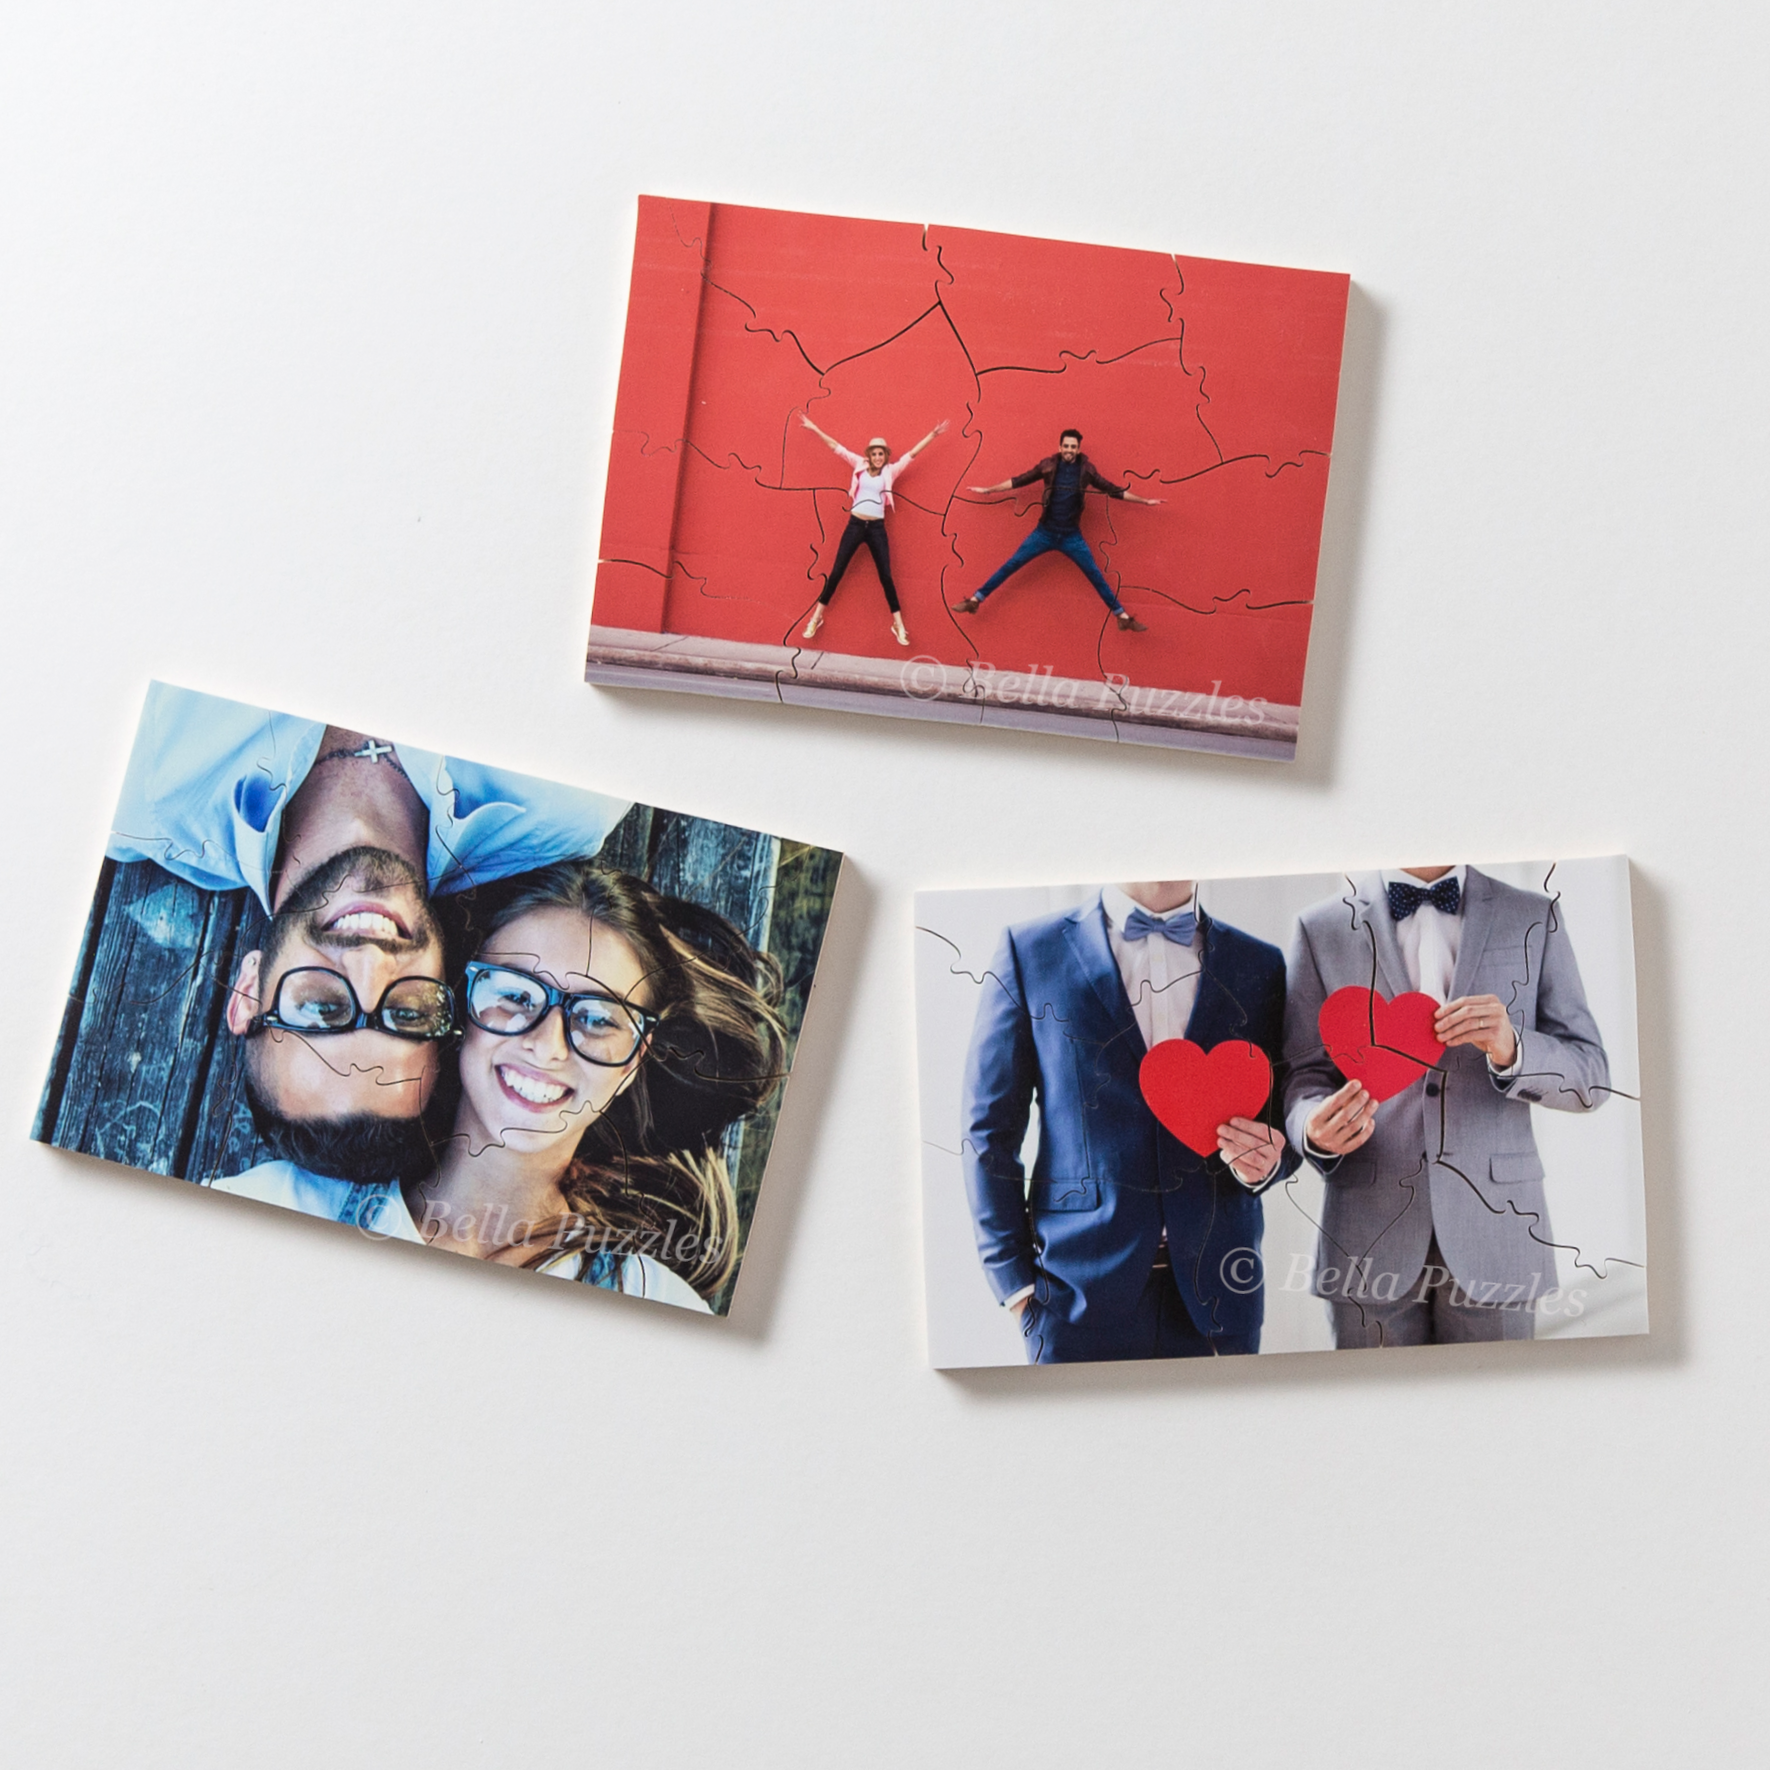 Gift sized custom wooden photo puzzles you can use for wedding favors, client gifts, birthday presents, or the holidays.